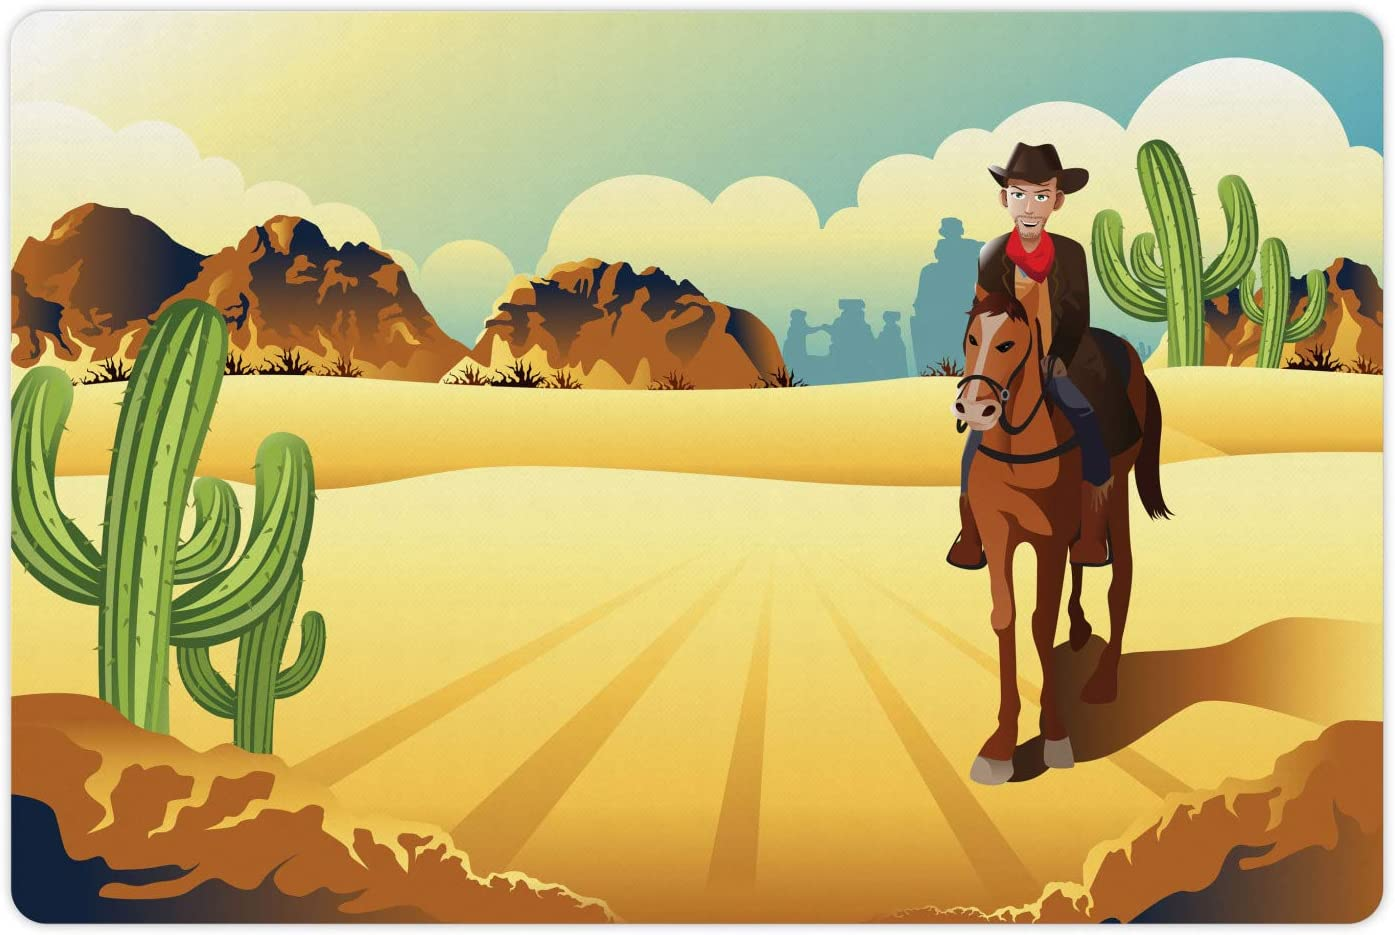 Ambesonne Western Horse Pet Mat for Food and Water, Country Themed Clipart Illustration Cowboy Riding in Desert Wild West, Non-Slip Rubber Mat for Dogs and Cats, 18